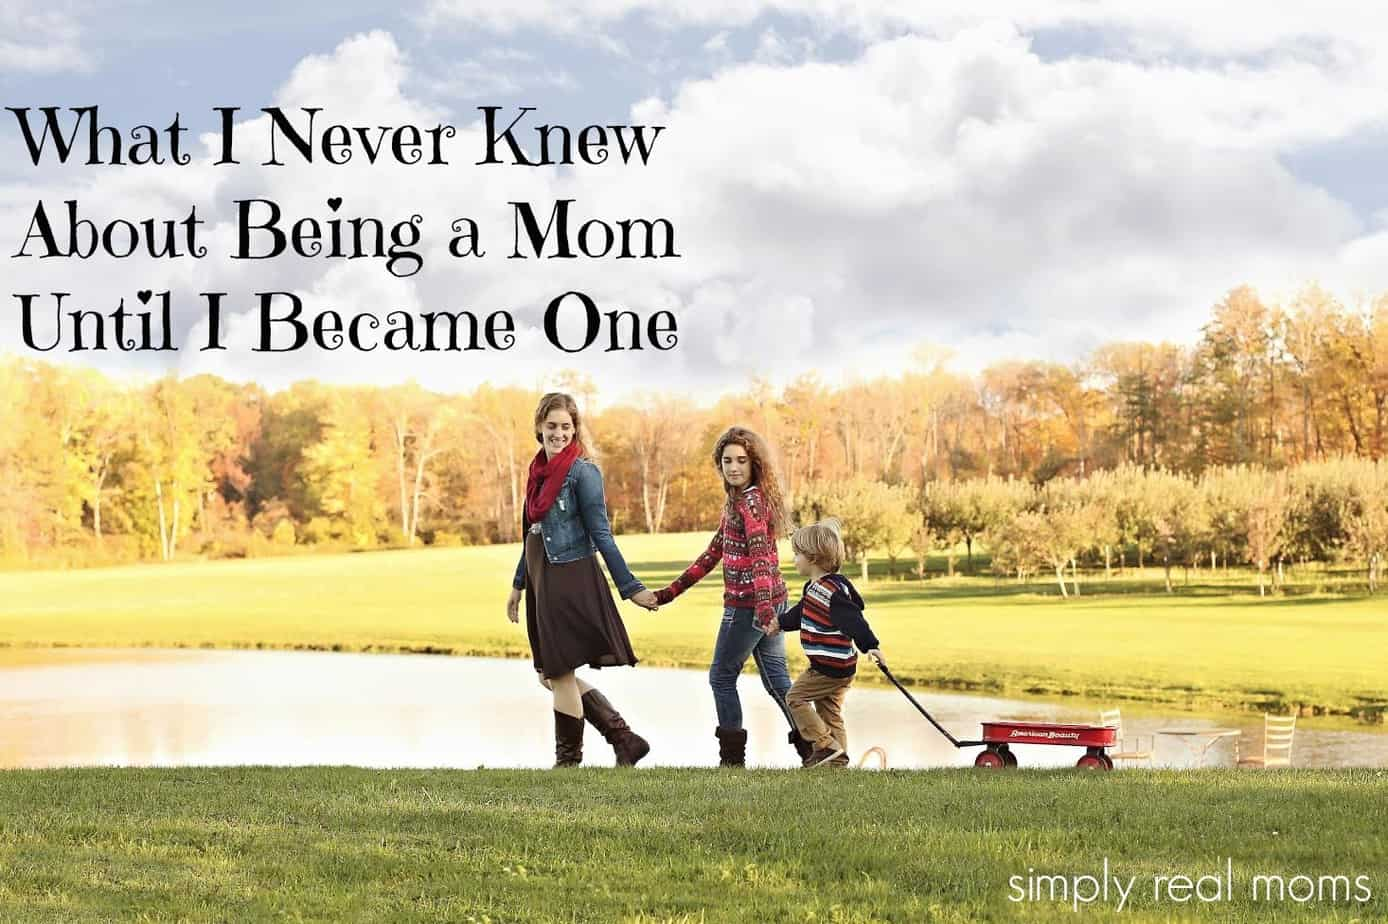 What I Never Knew About Being a Mom Until I Became One 1